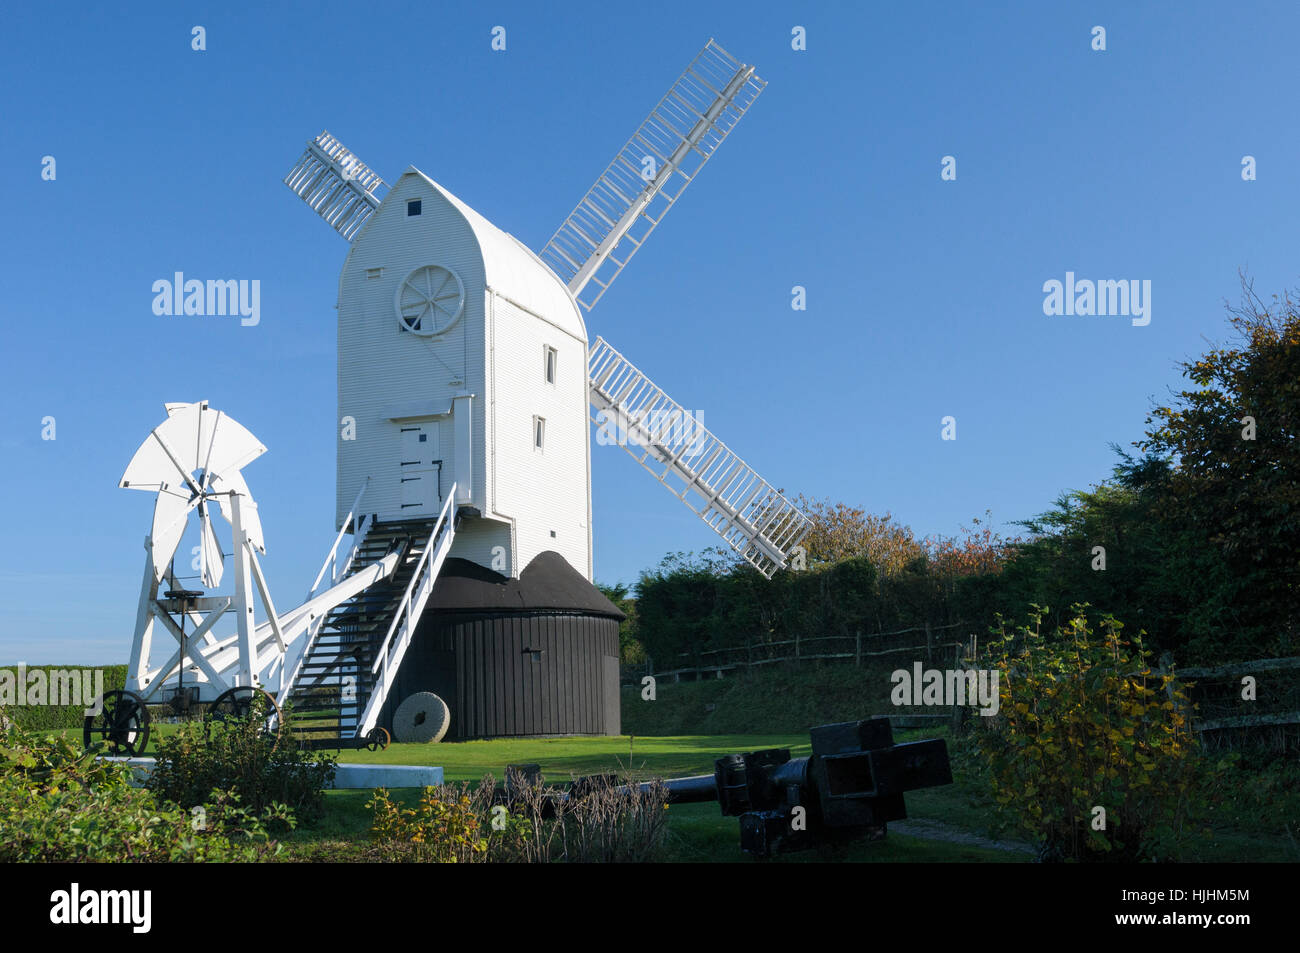 One of the Clayton windmills (Jill), Sussex, England, UK - Stock Image